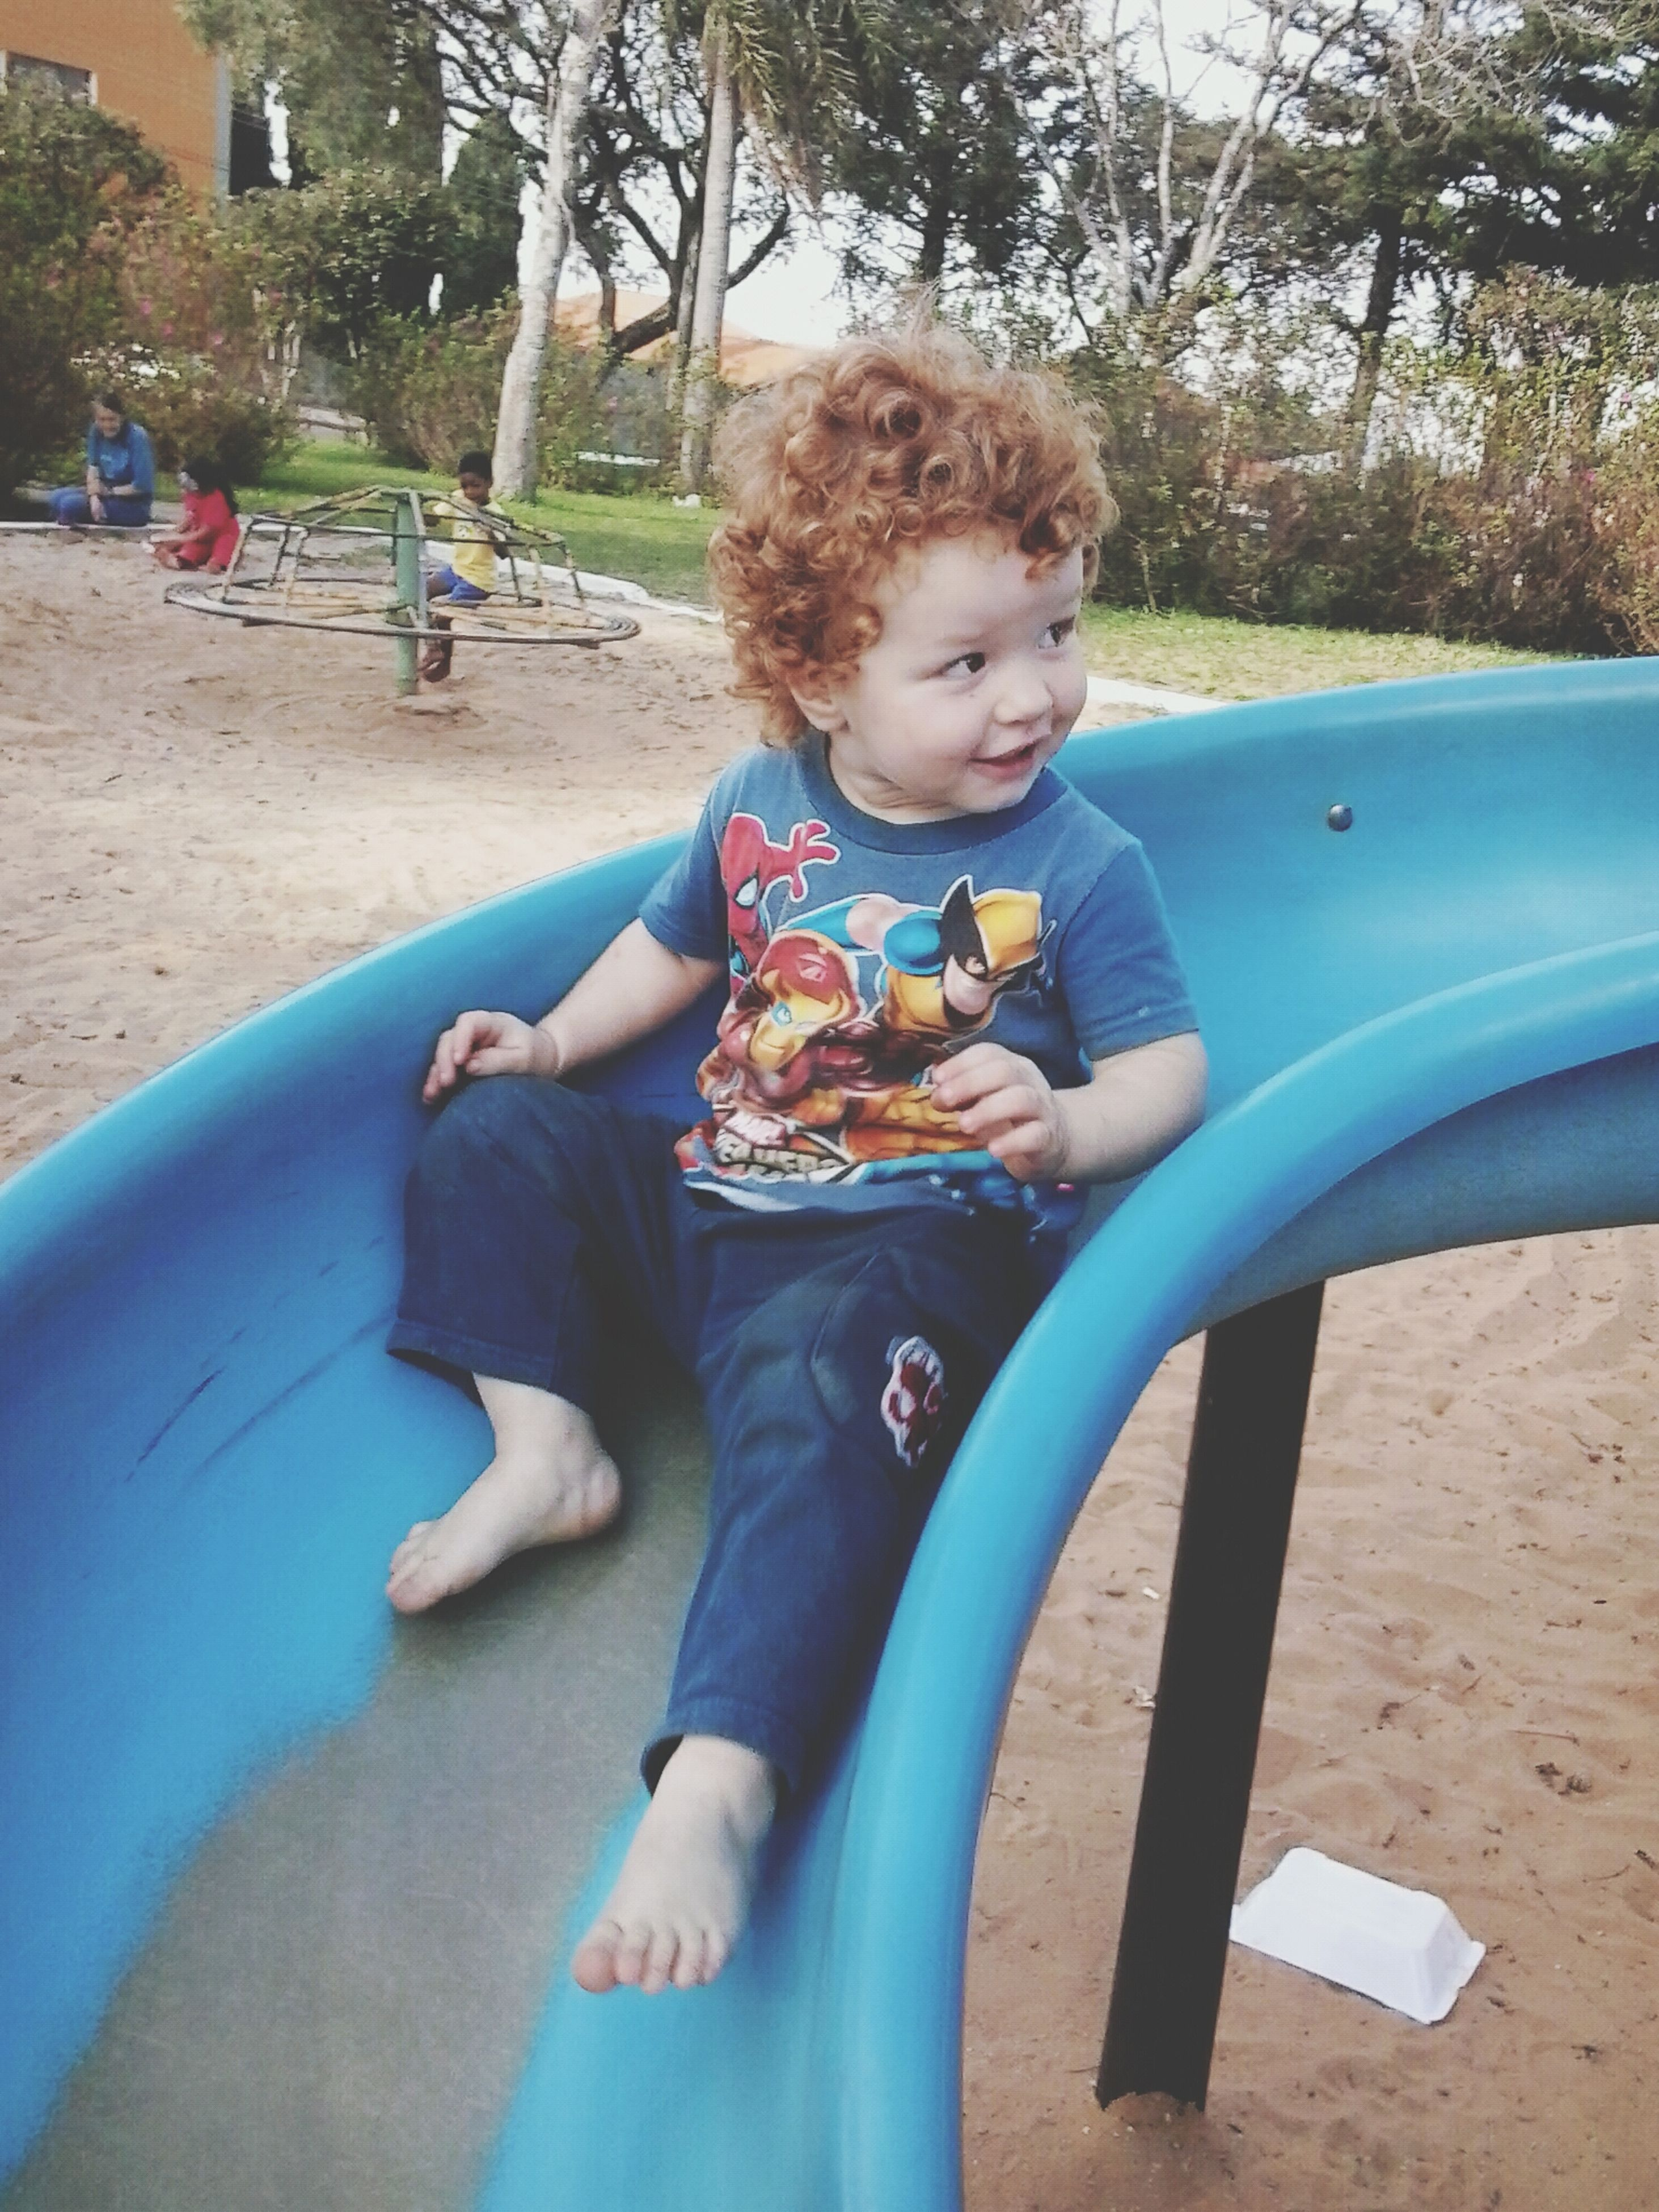 childhood, elementary age, leisure activity, lifestyles, person, boys, park - man made space, sitting, innocence, playground, girls, cute, relaxation, tree, casual clothing, full length, playing, fun